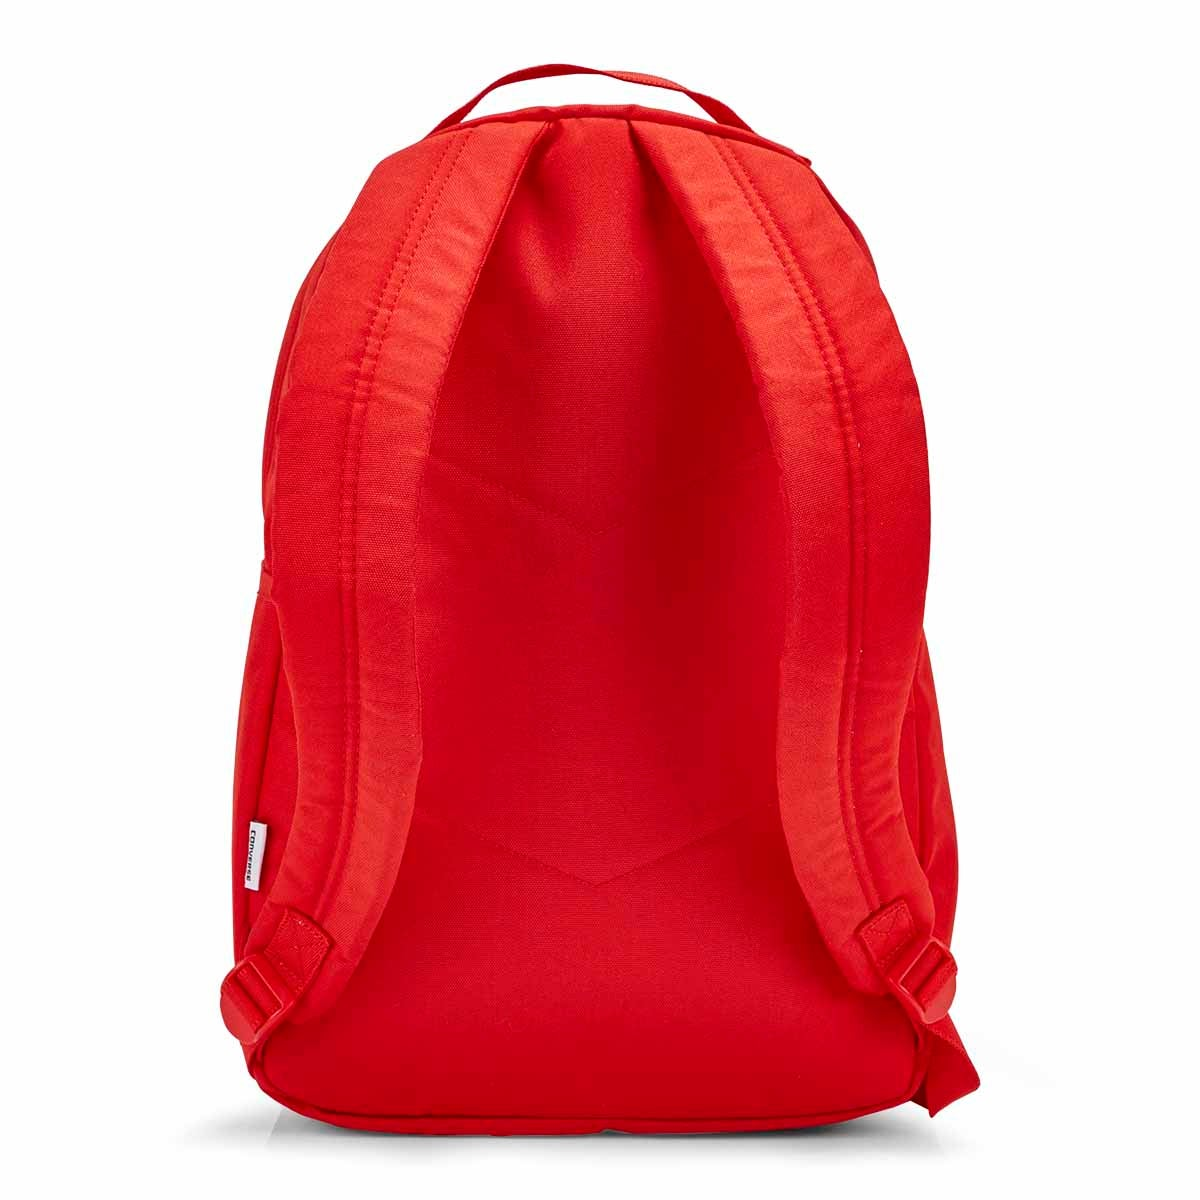 Unisex The GO red backpack